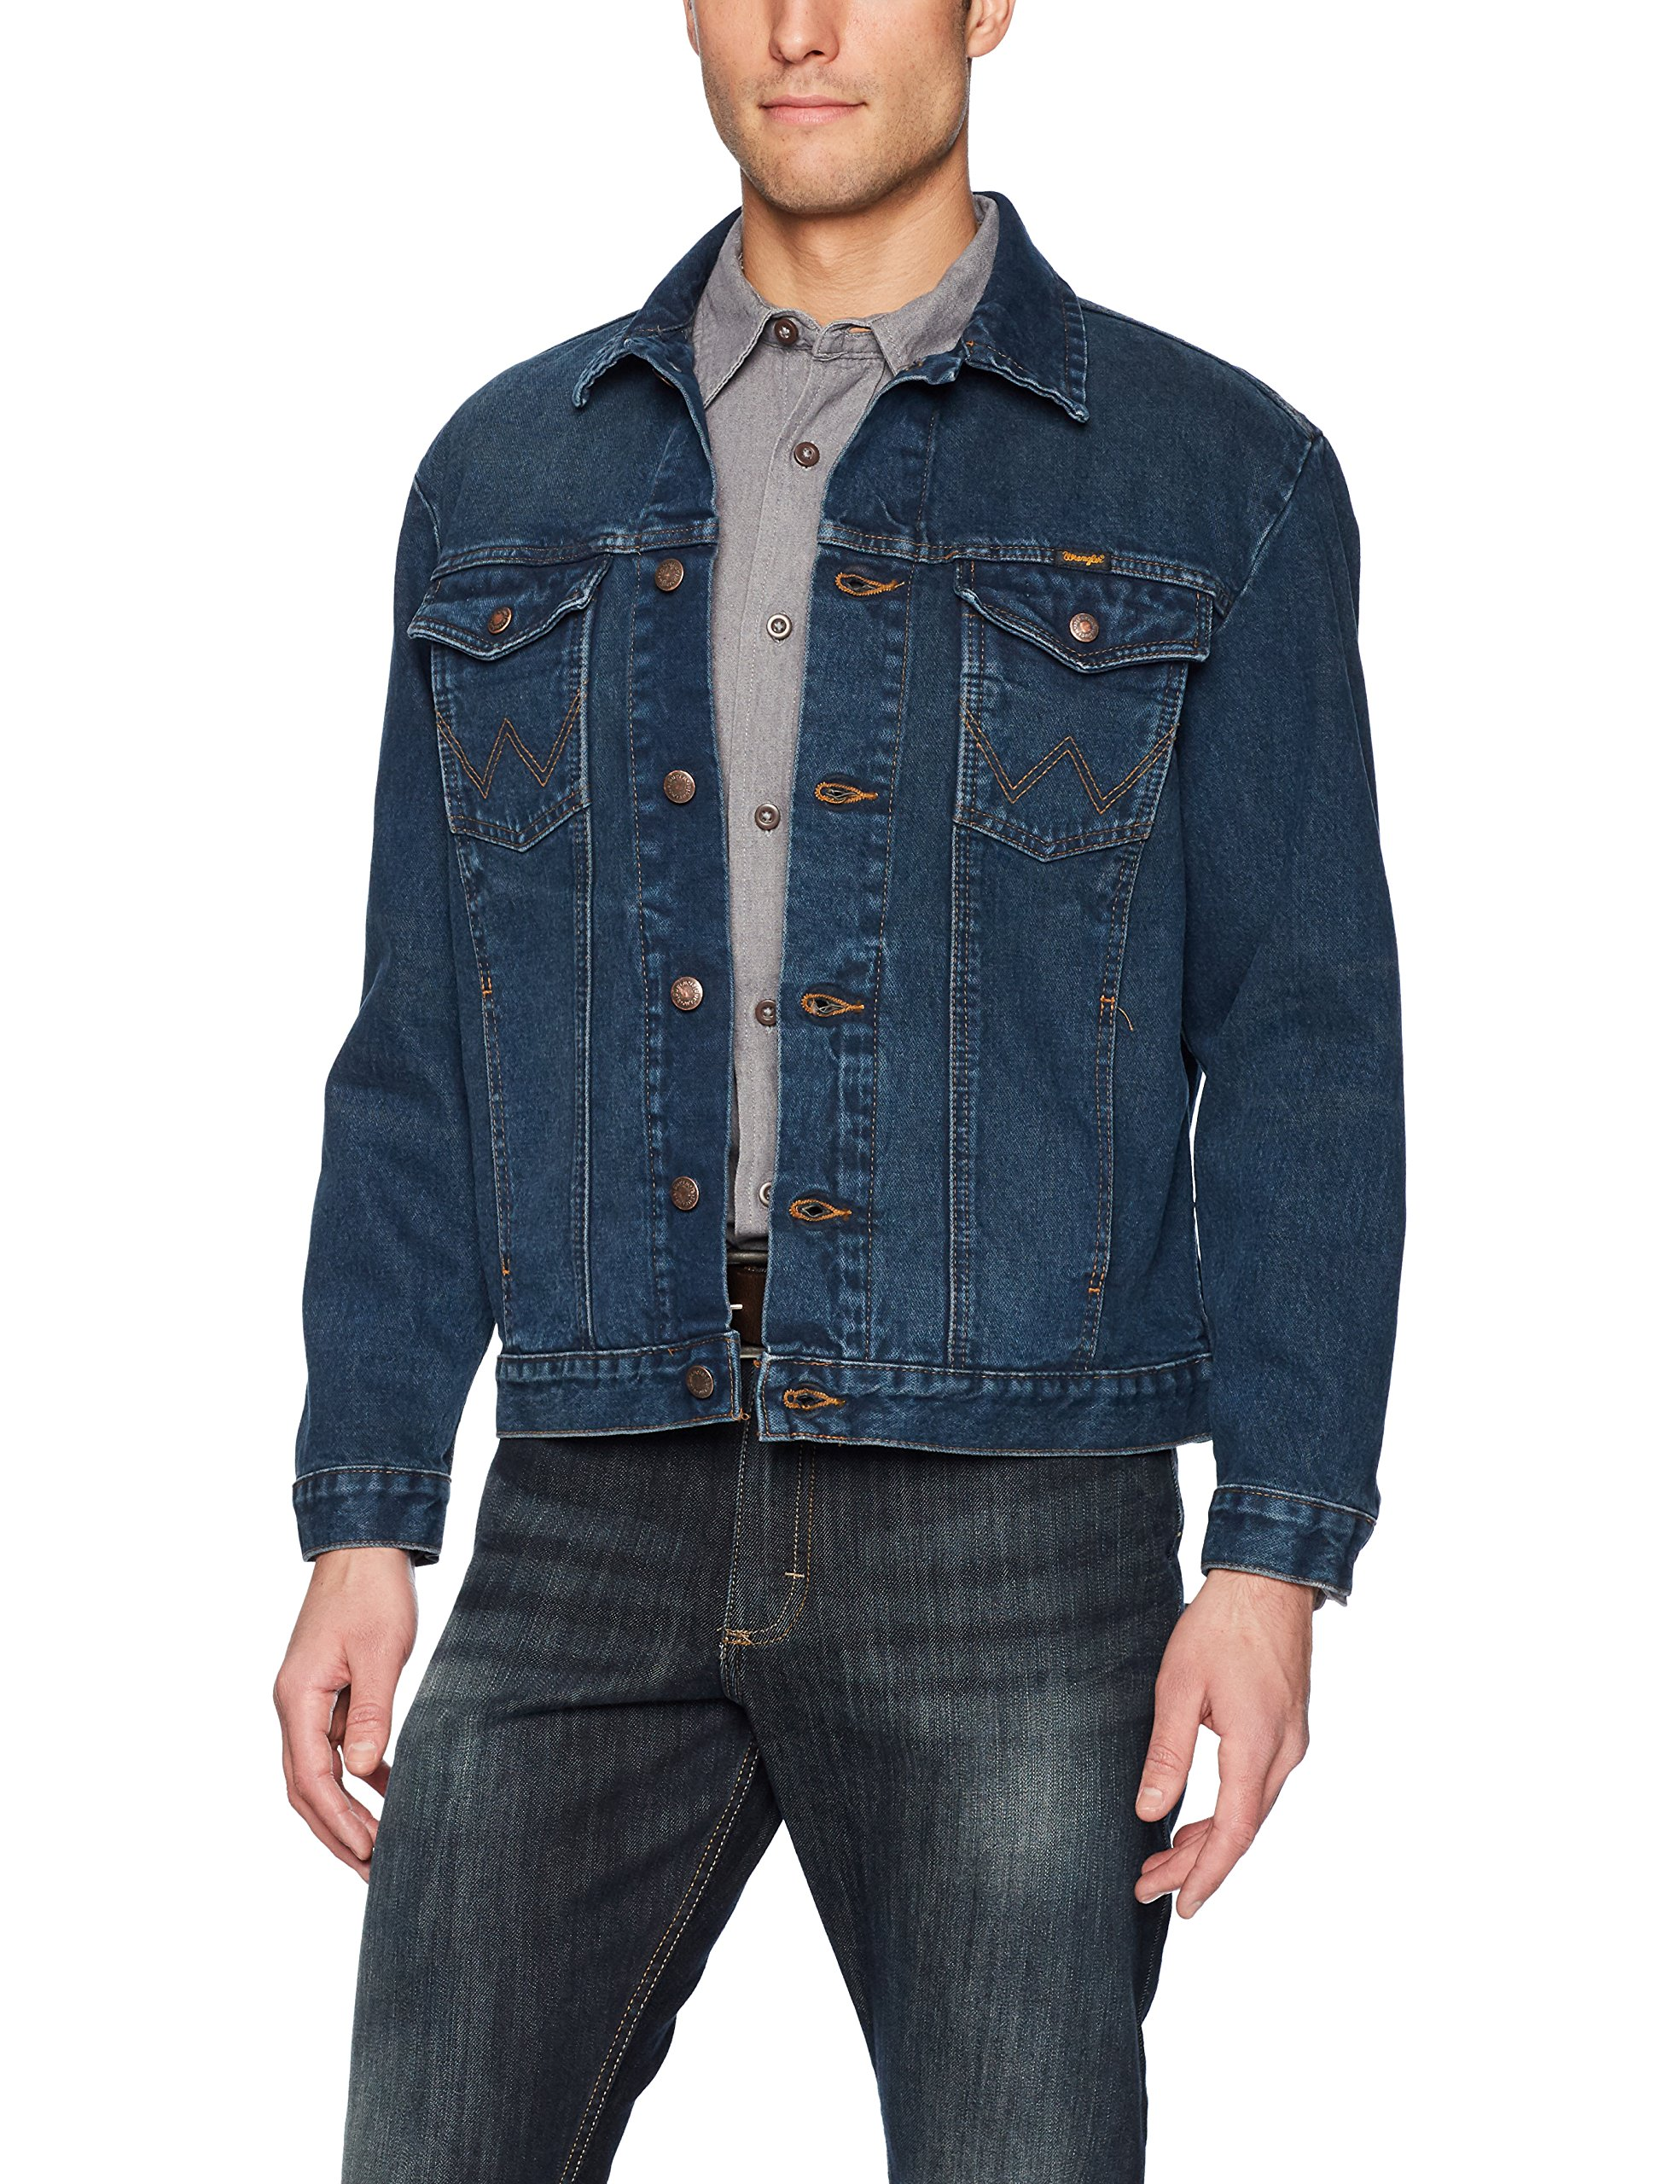 Wrangler Men's Western Style Denim Jacket, Dark Blue, L by Wrangler